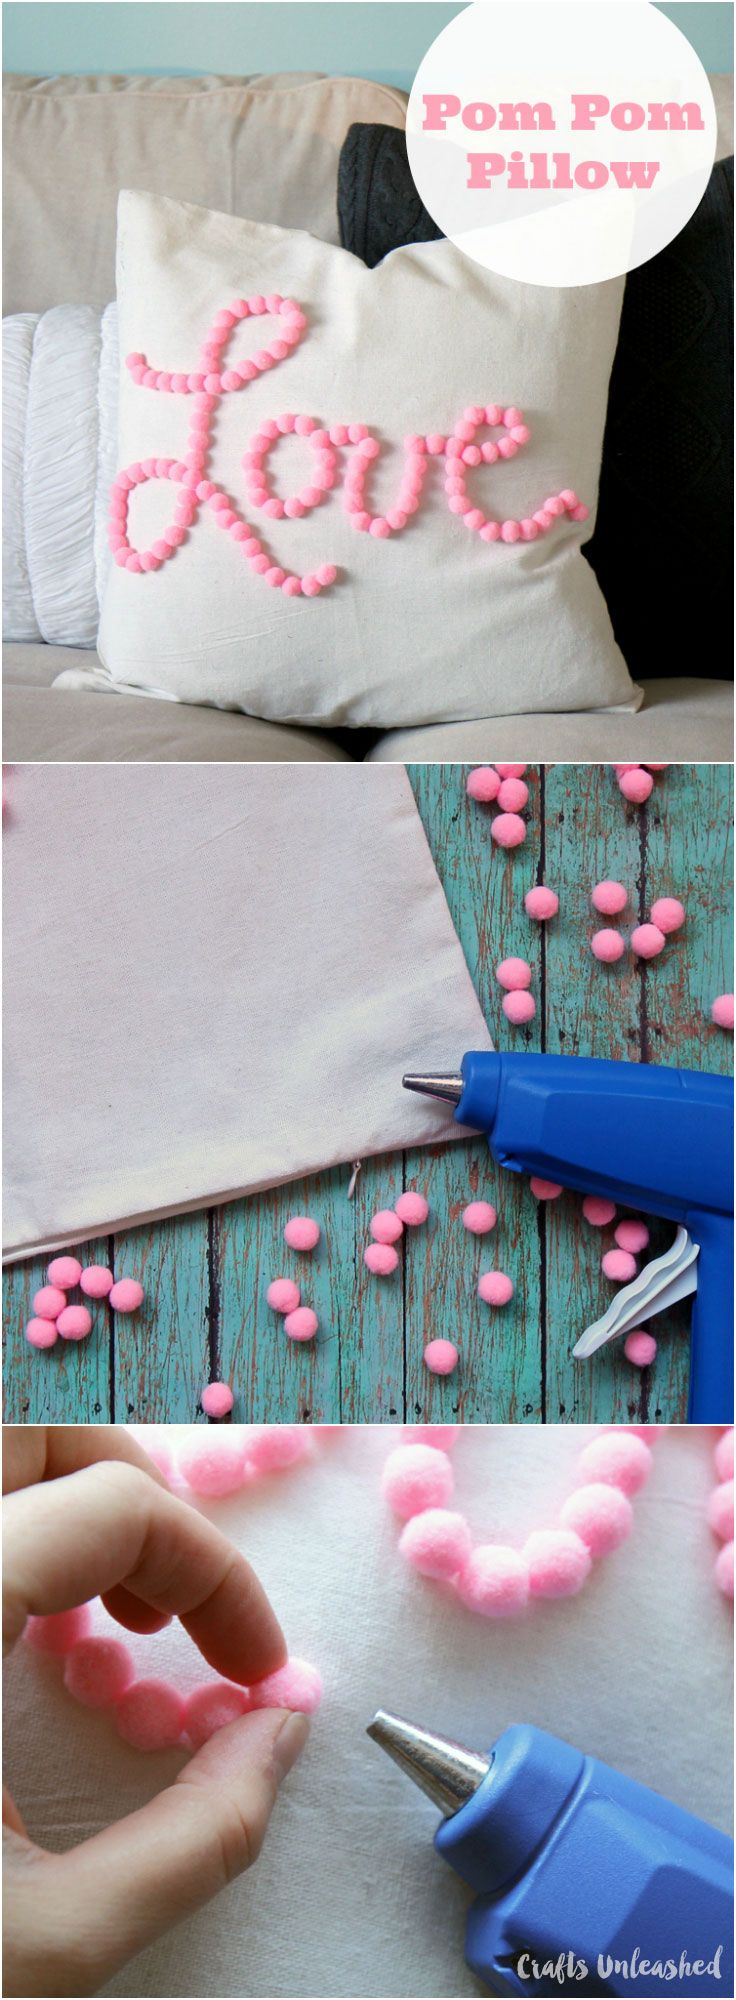 17 best images about teen room decor on pinterest crafts for Room decor pinterest